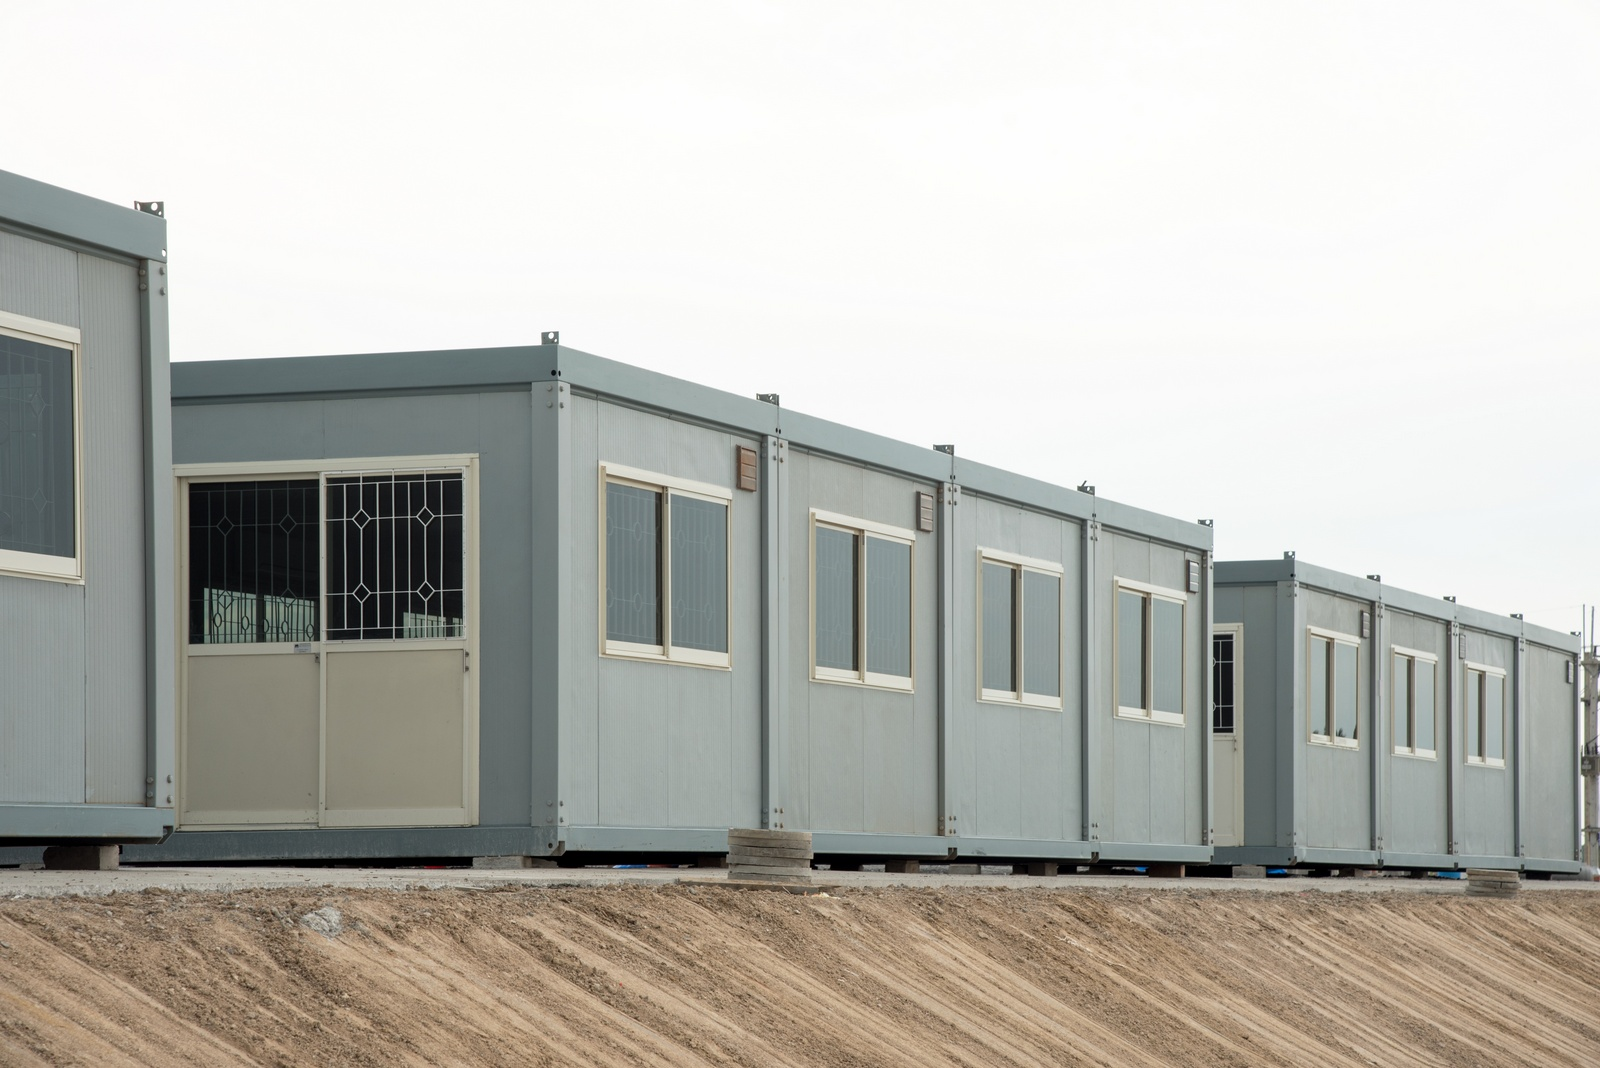 Leasing & Financing for Portable Modular Buildings